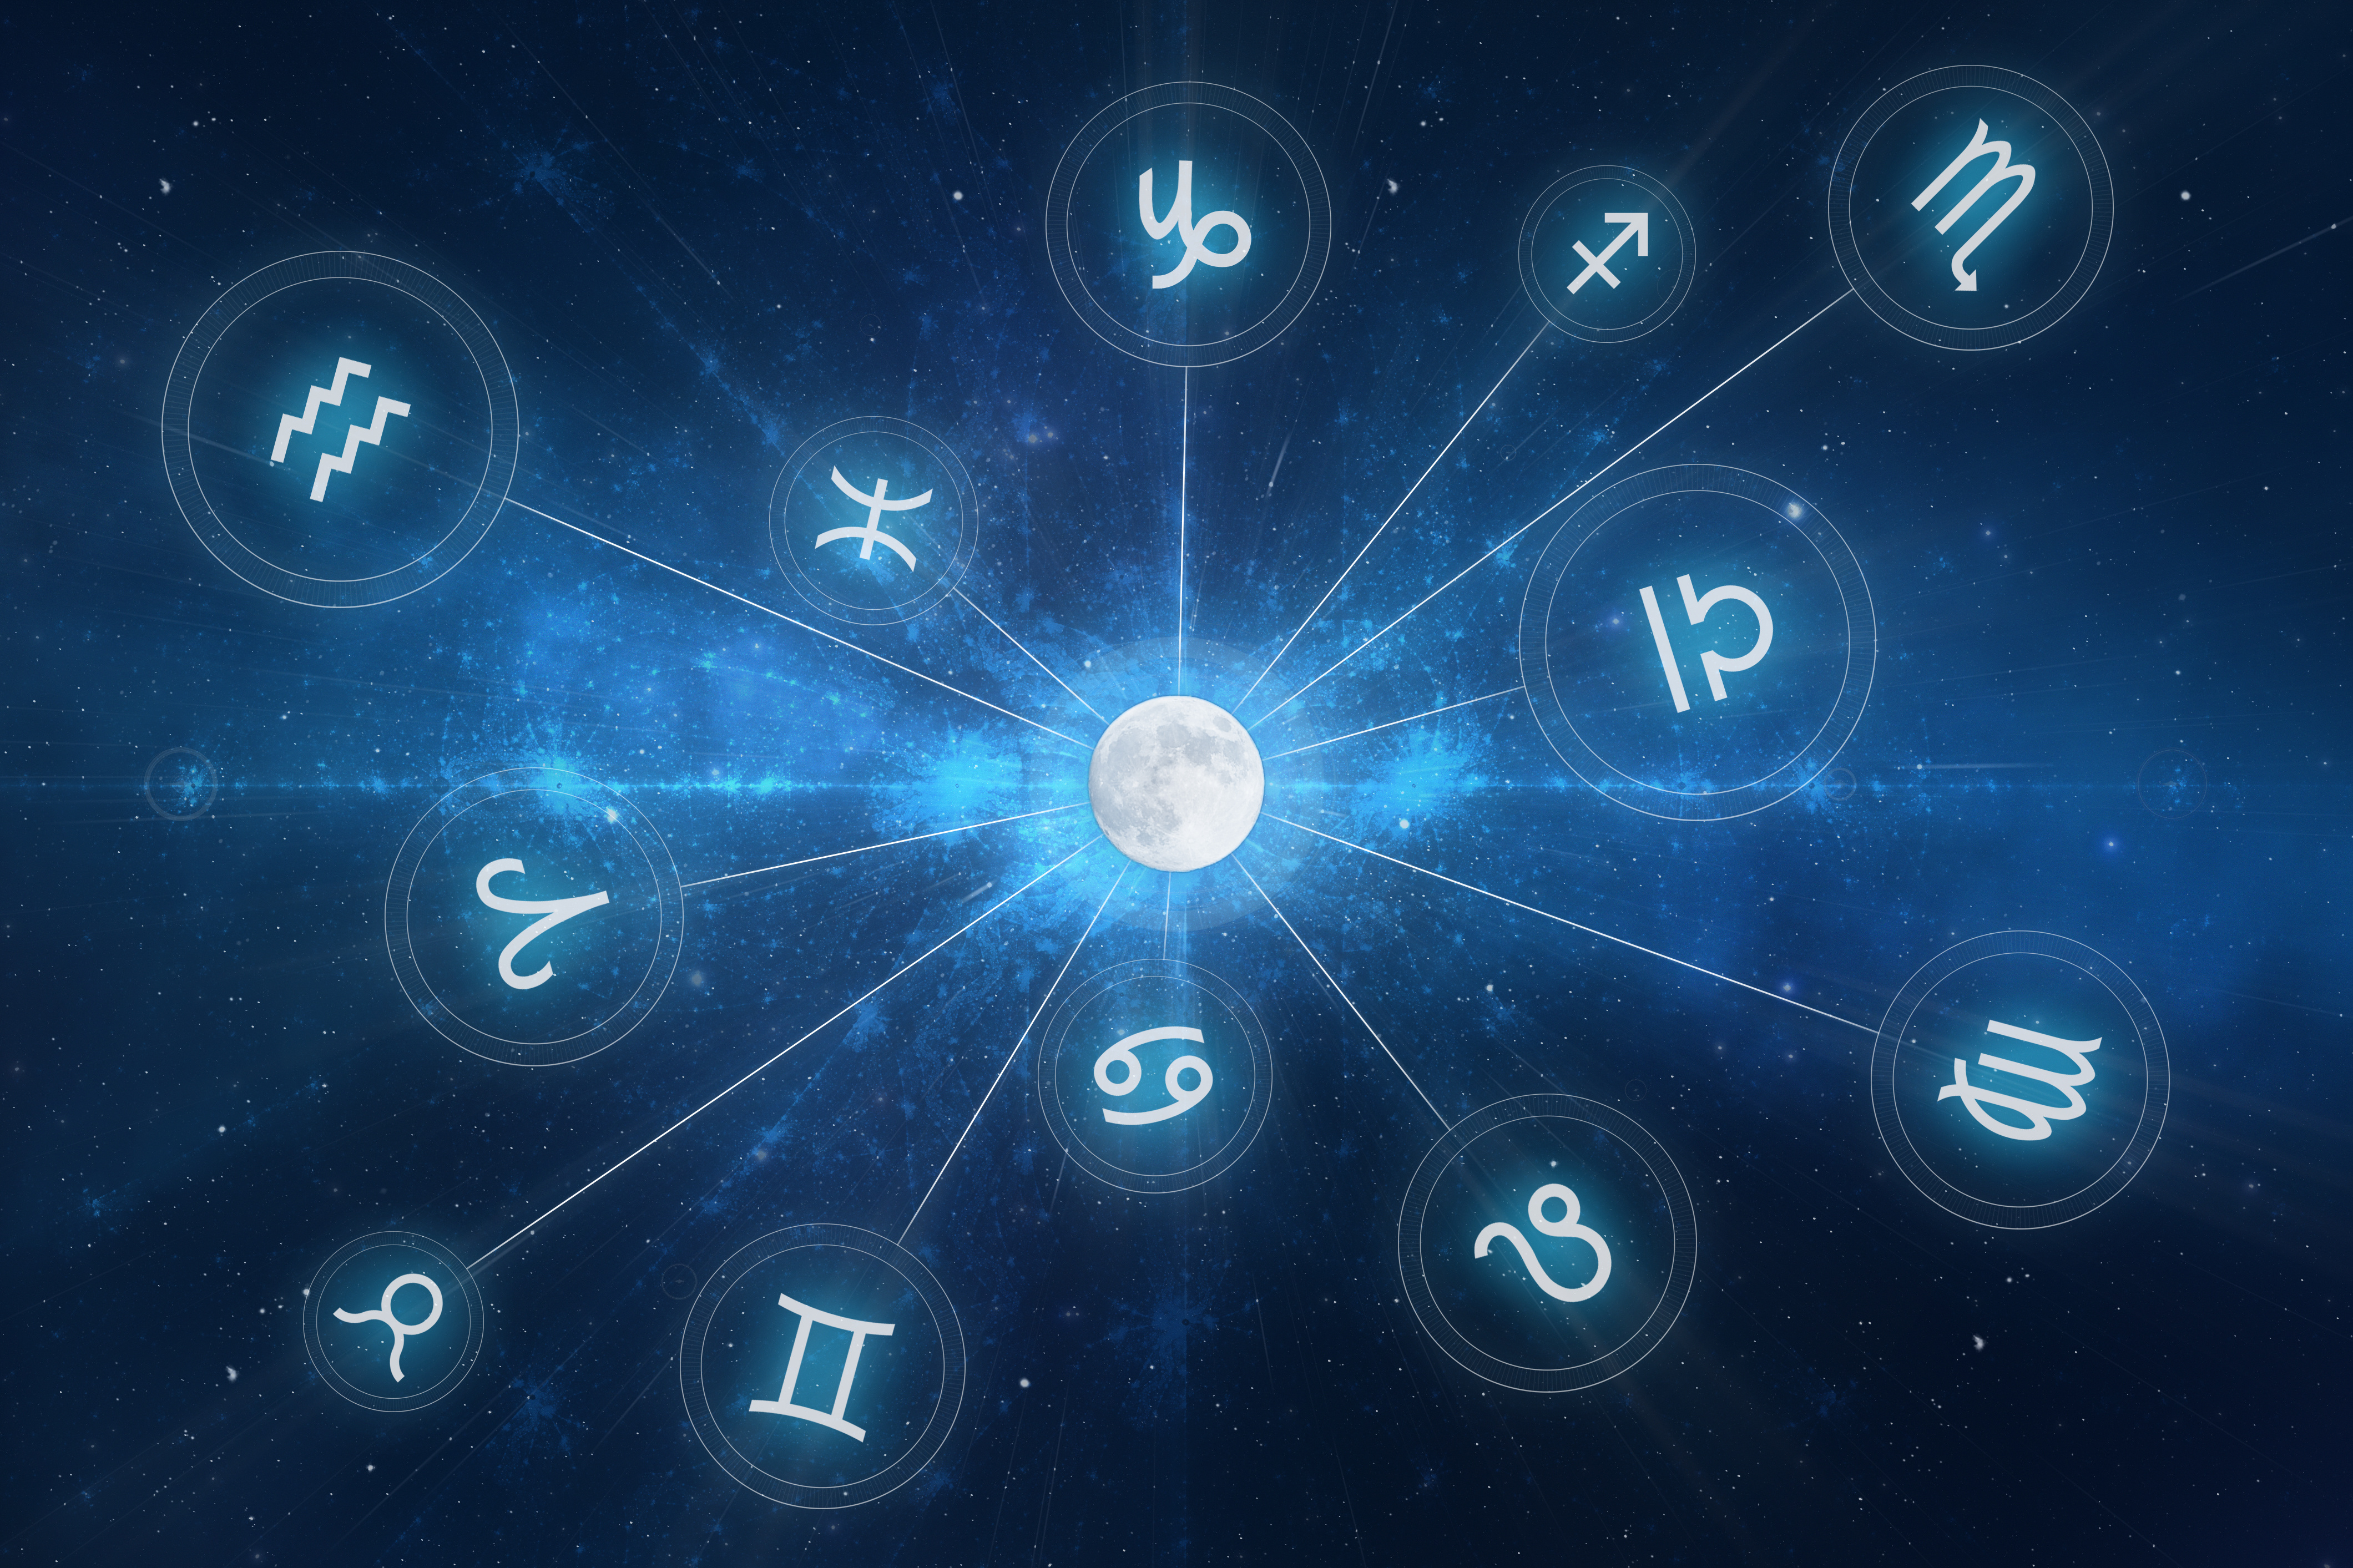 AAP Sales Page Zodiac signs around earth